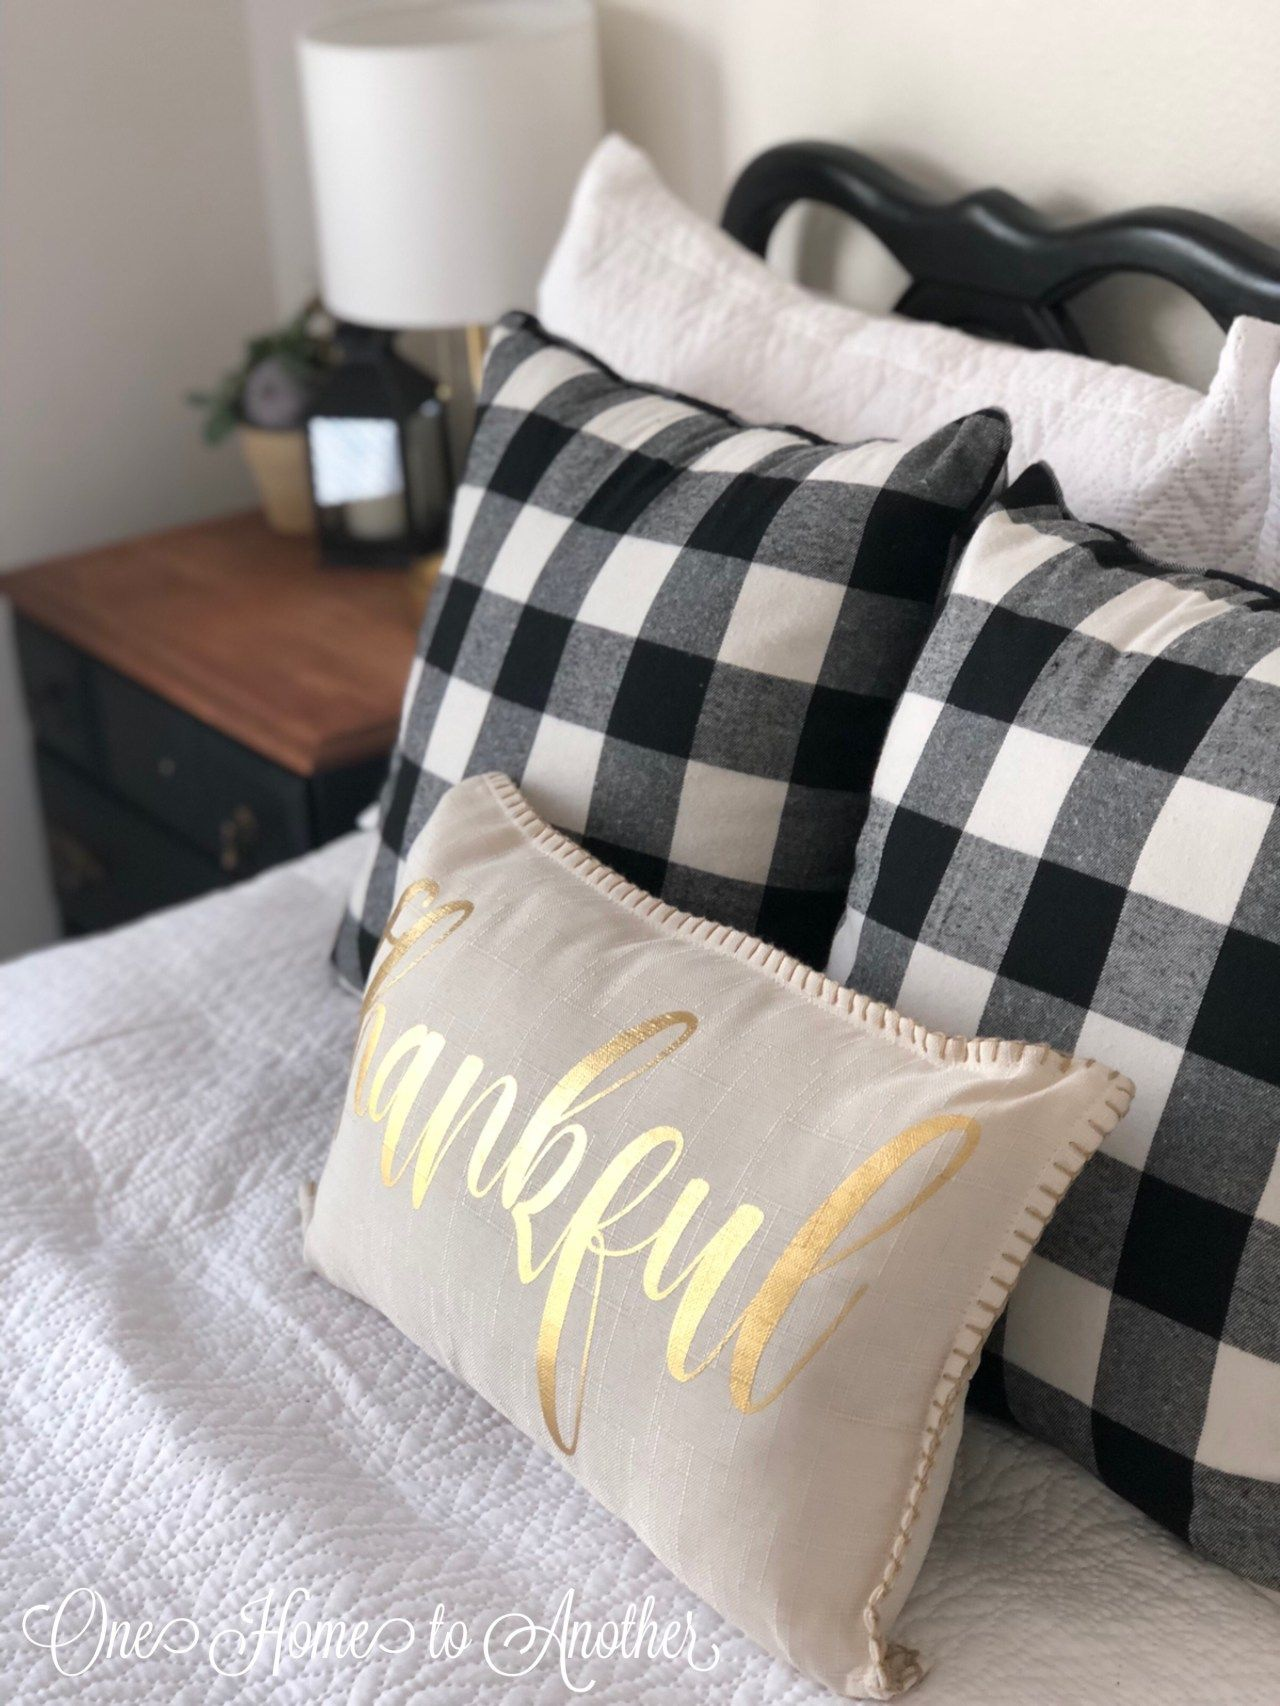 Adding buffalo check to my guest room guest room